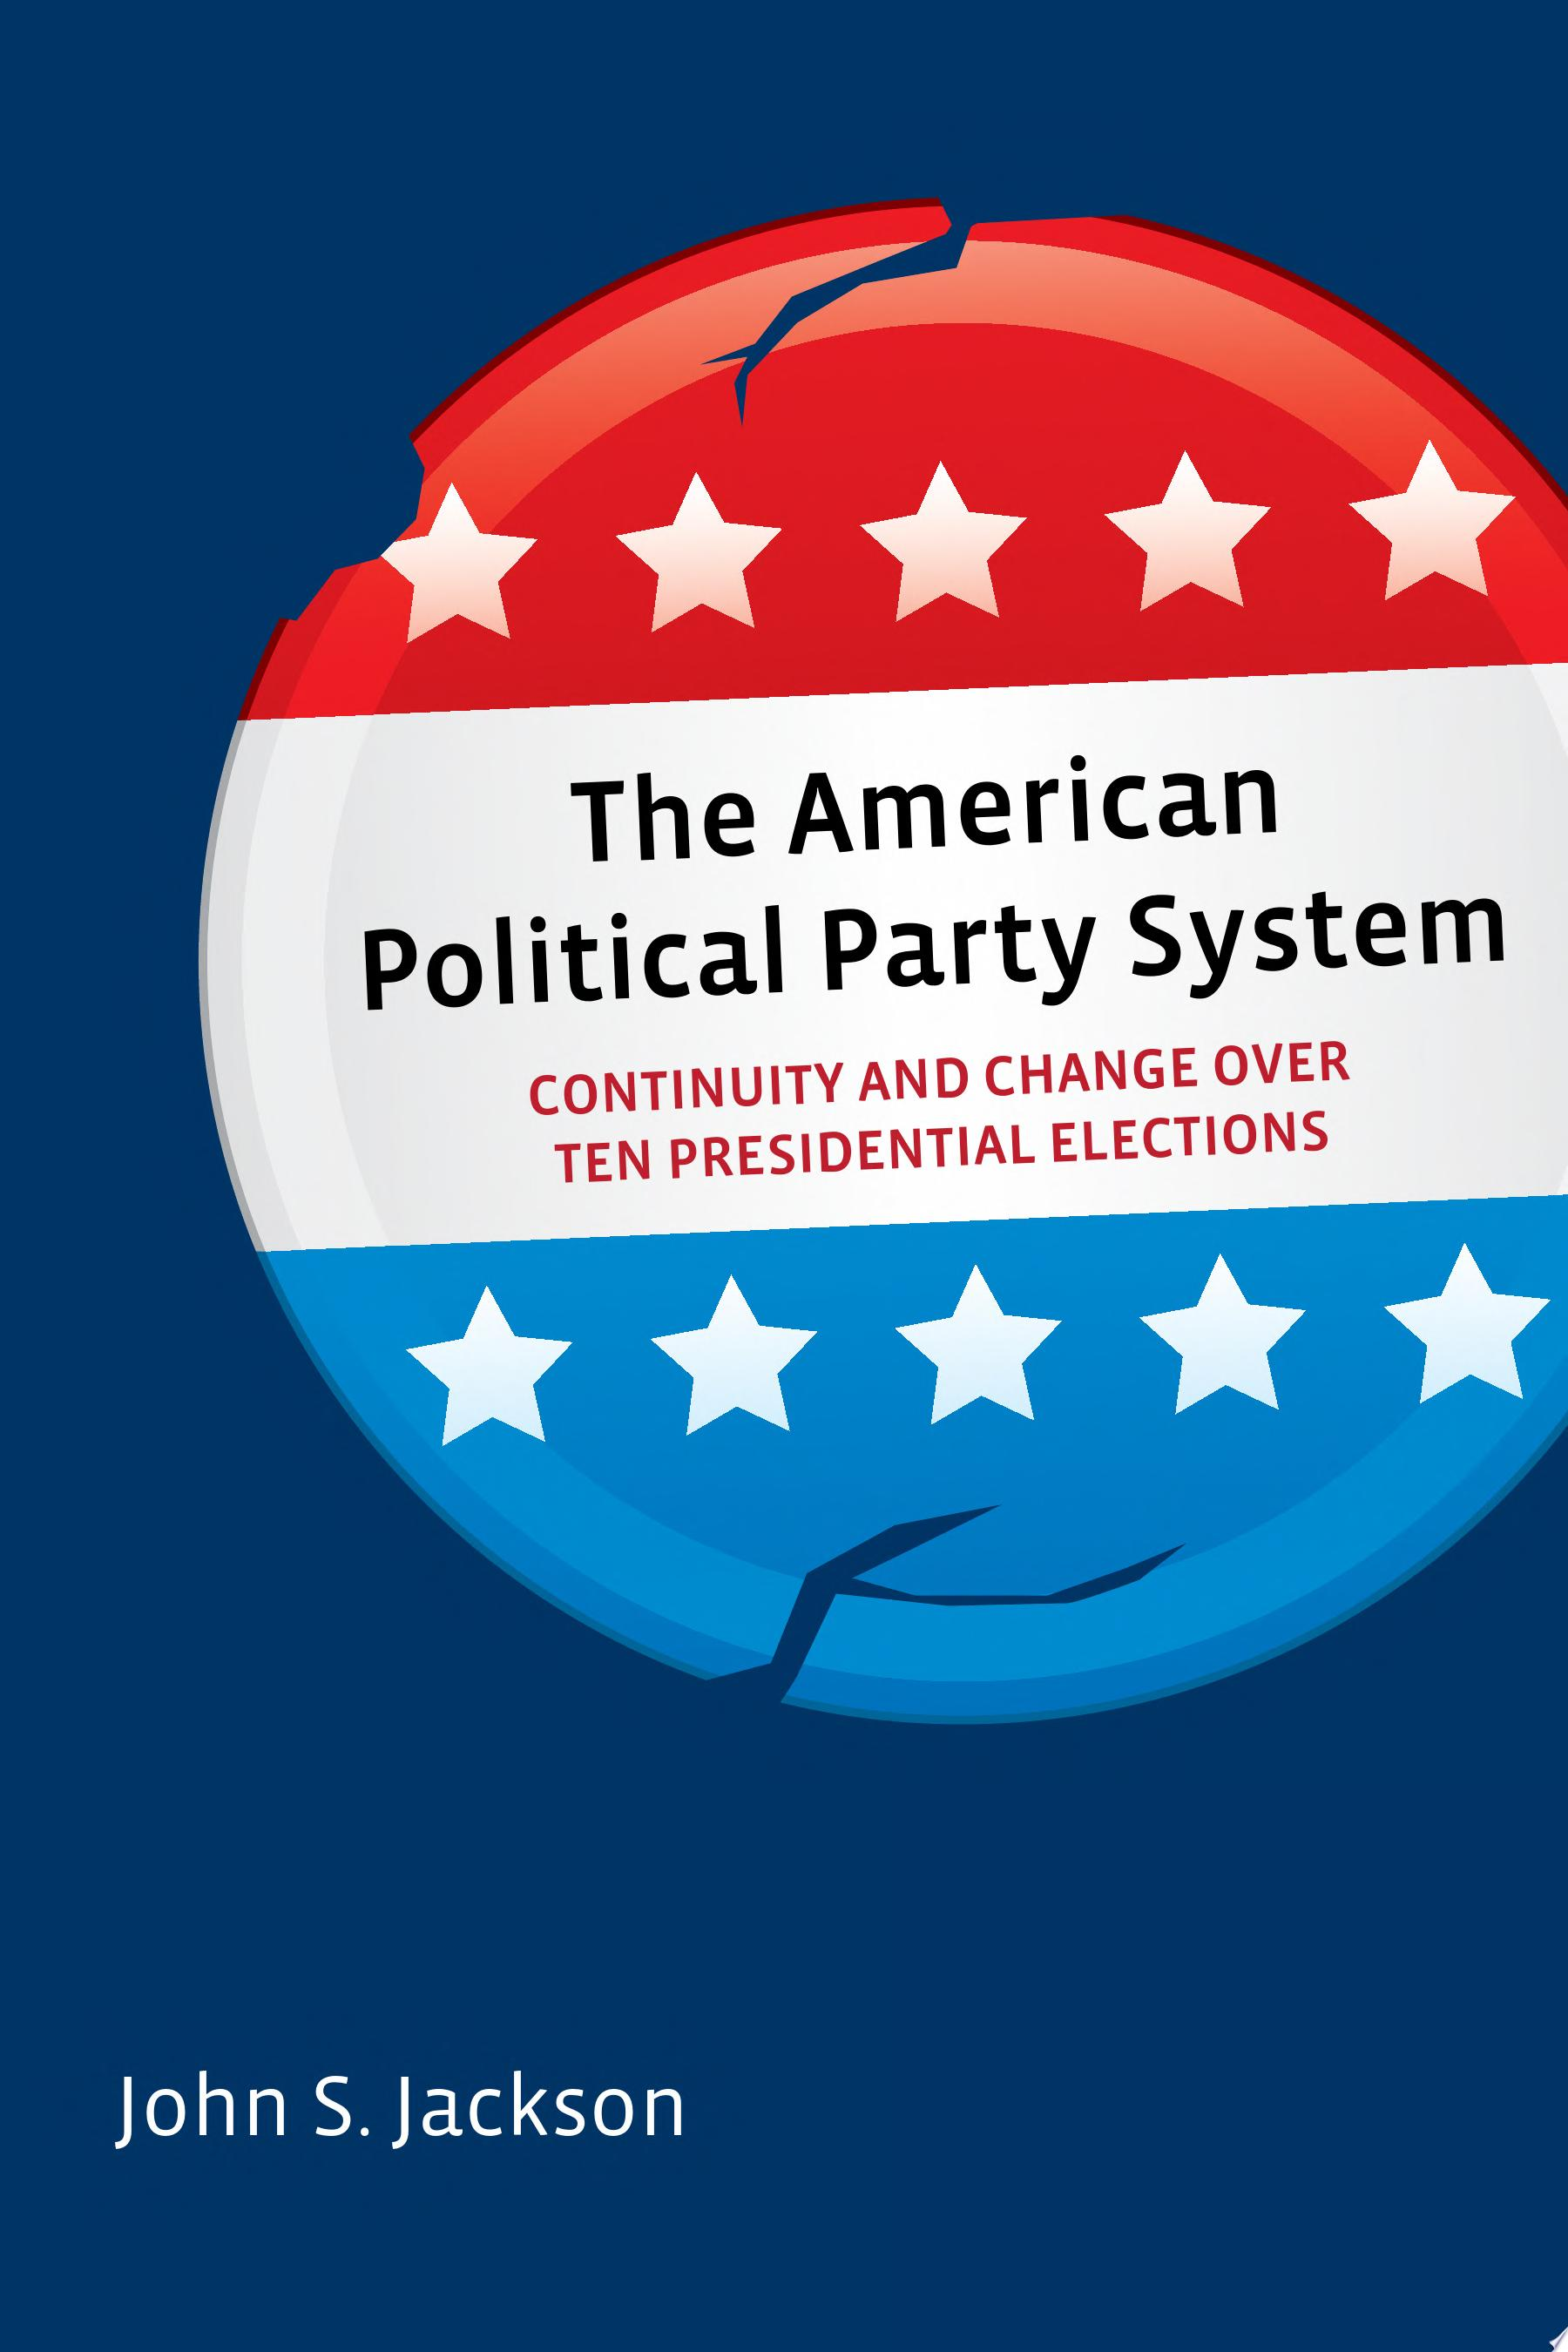 The American Political Party System